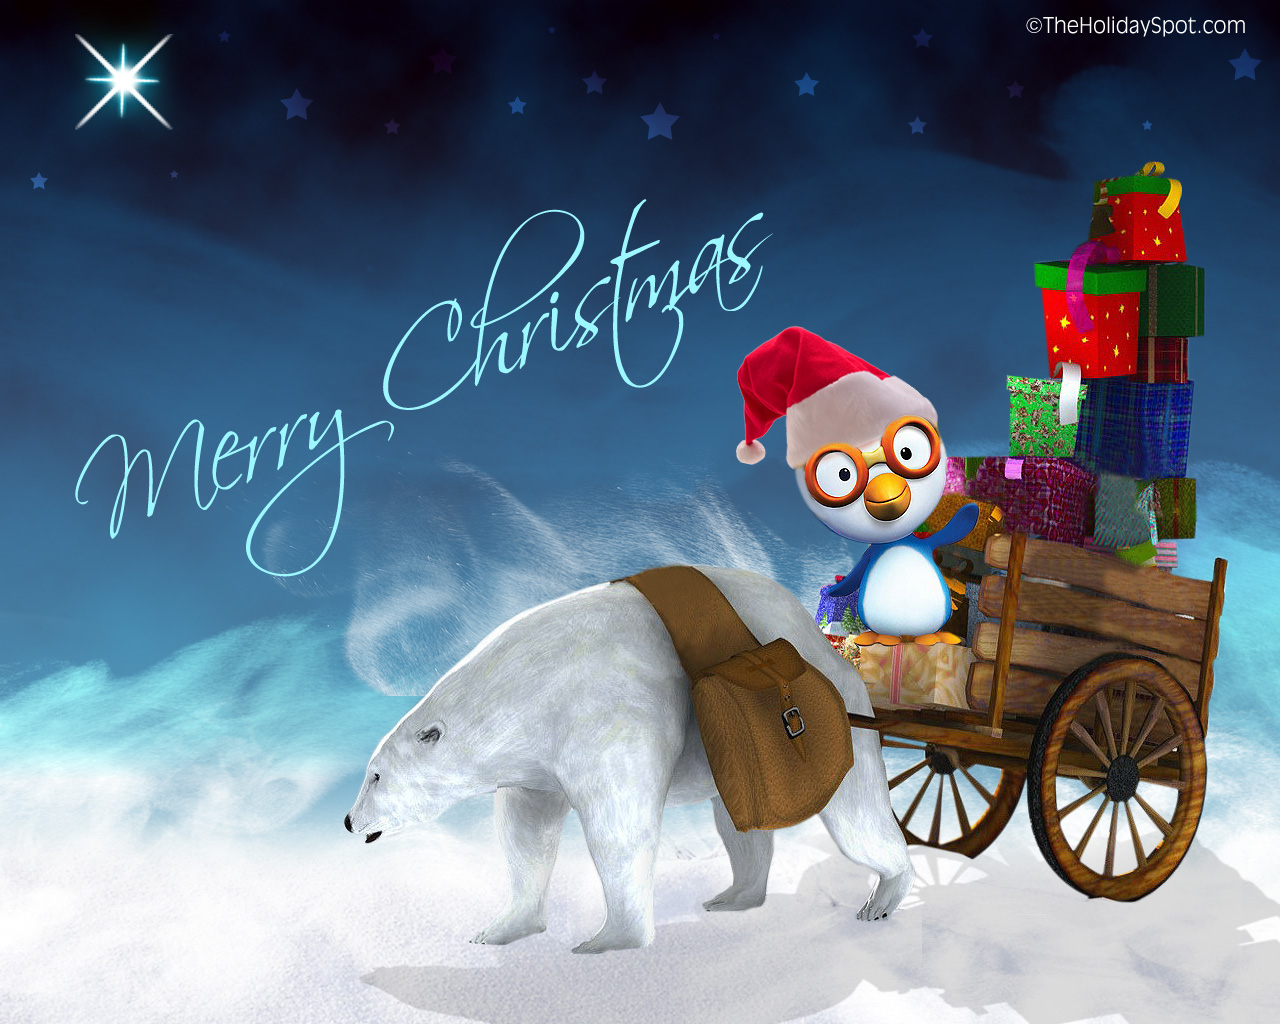 Merry Christmas wallpaper  Android Apps on Google Play 1280x1024